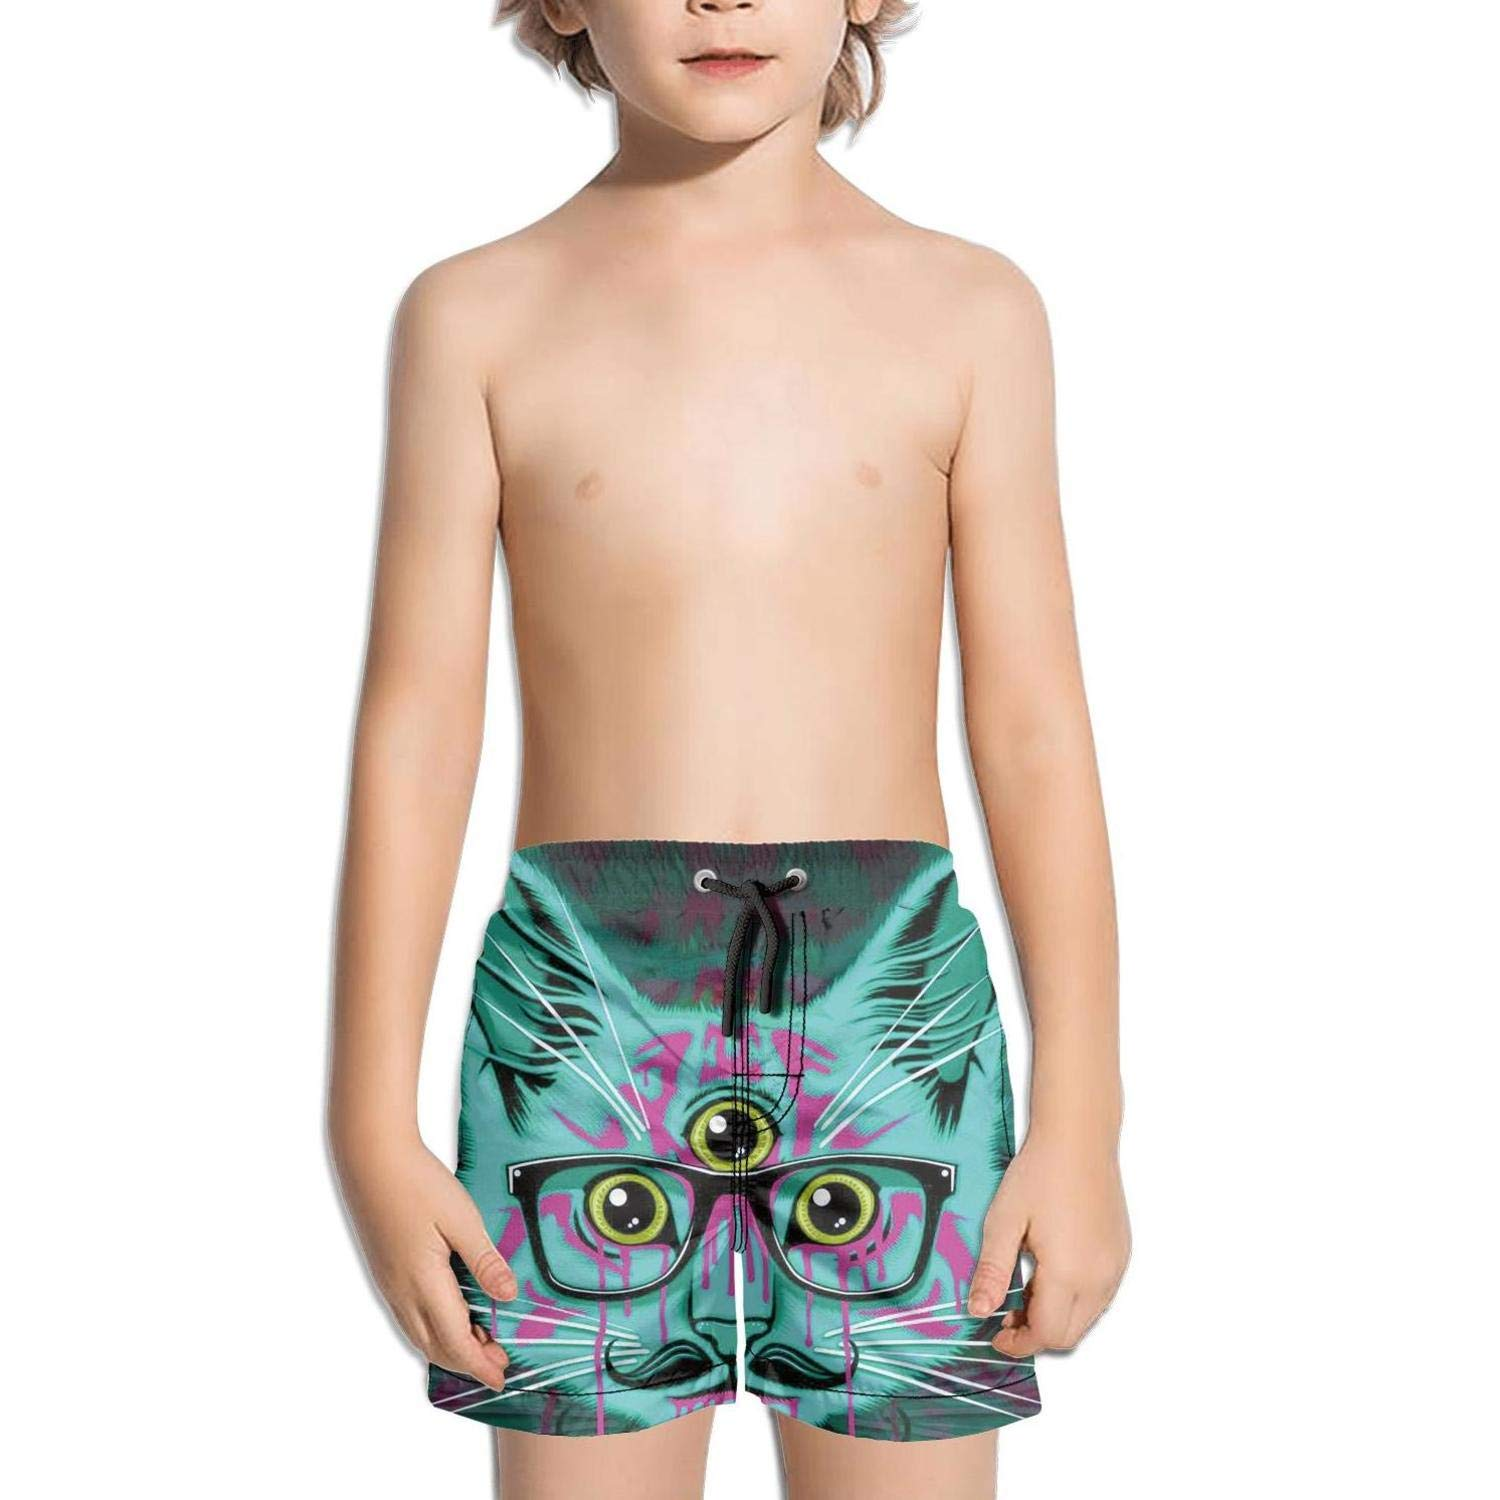 Cats Rolling Around Boys Girls Swimming Trunks Beach Board Shorts Fully Lined Absorbent Colorful Graphic Kids Short Pants